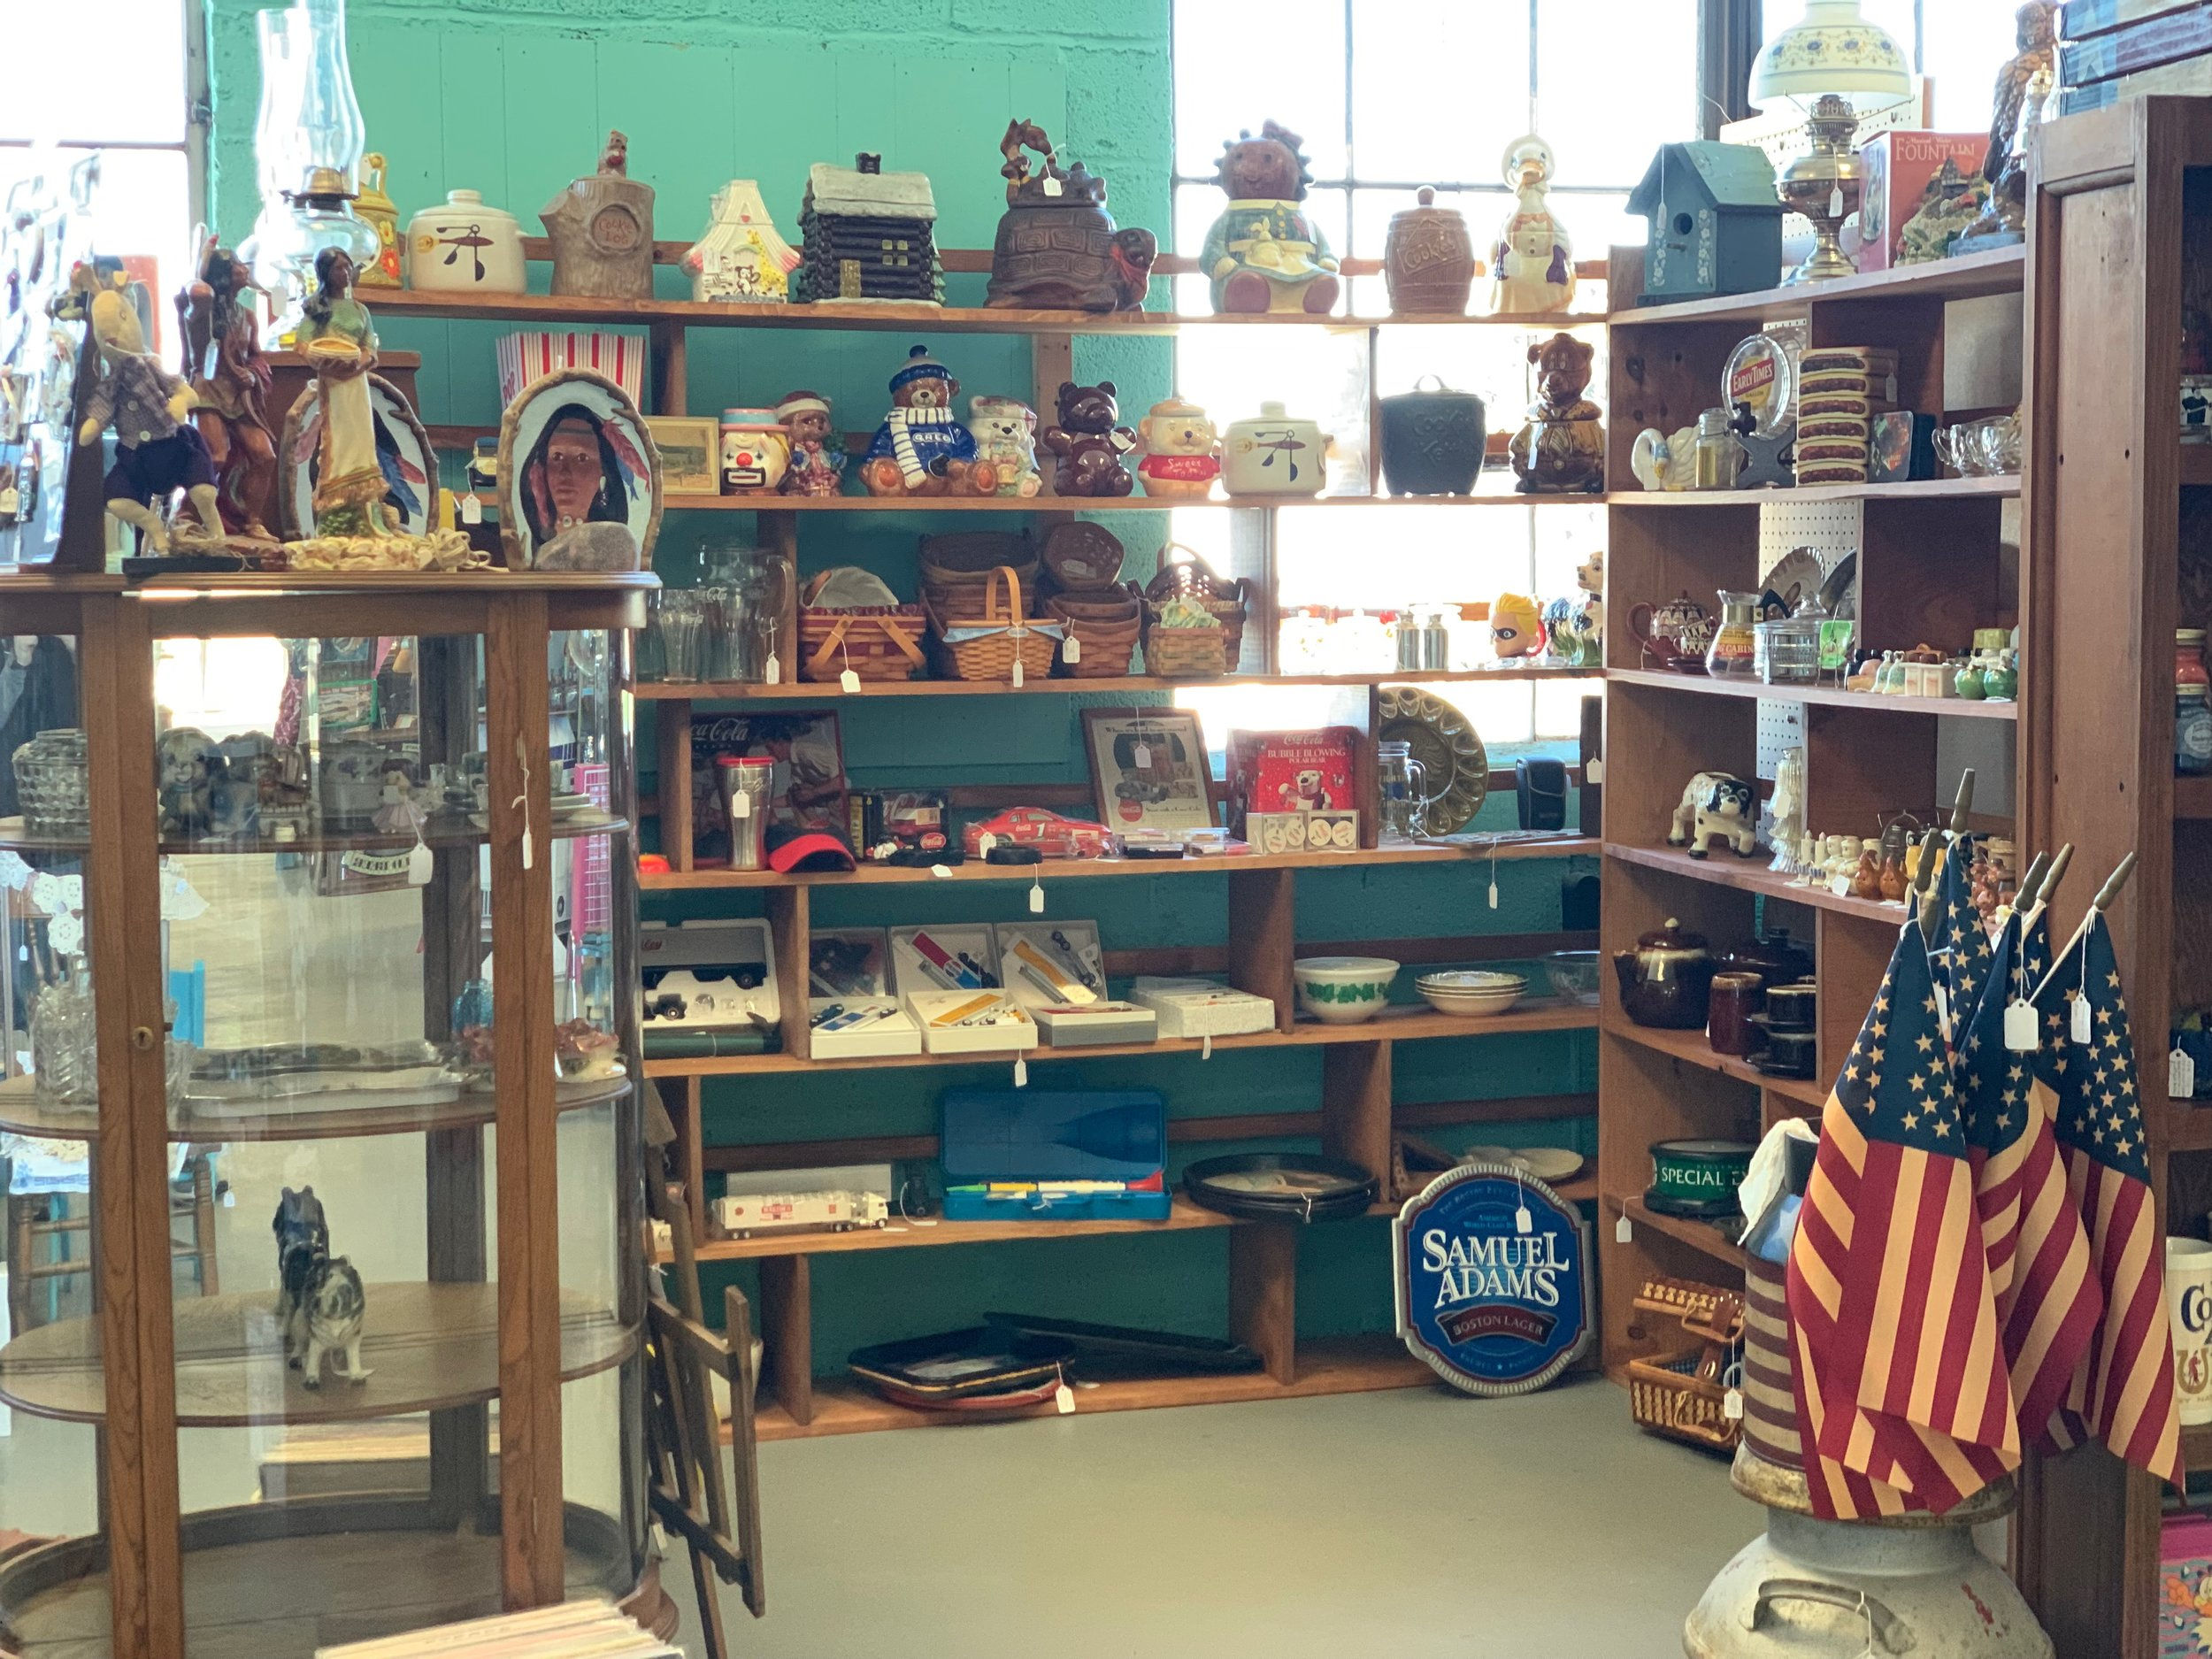 Jeff's Antiques etc. - Variety of Collectibles & Antiques! (Cookie Jars, Coca-Cola Collectibles, Glassware, etc.)